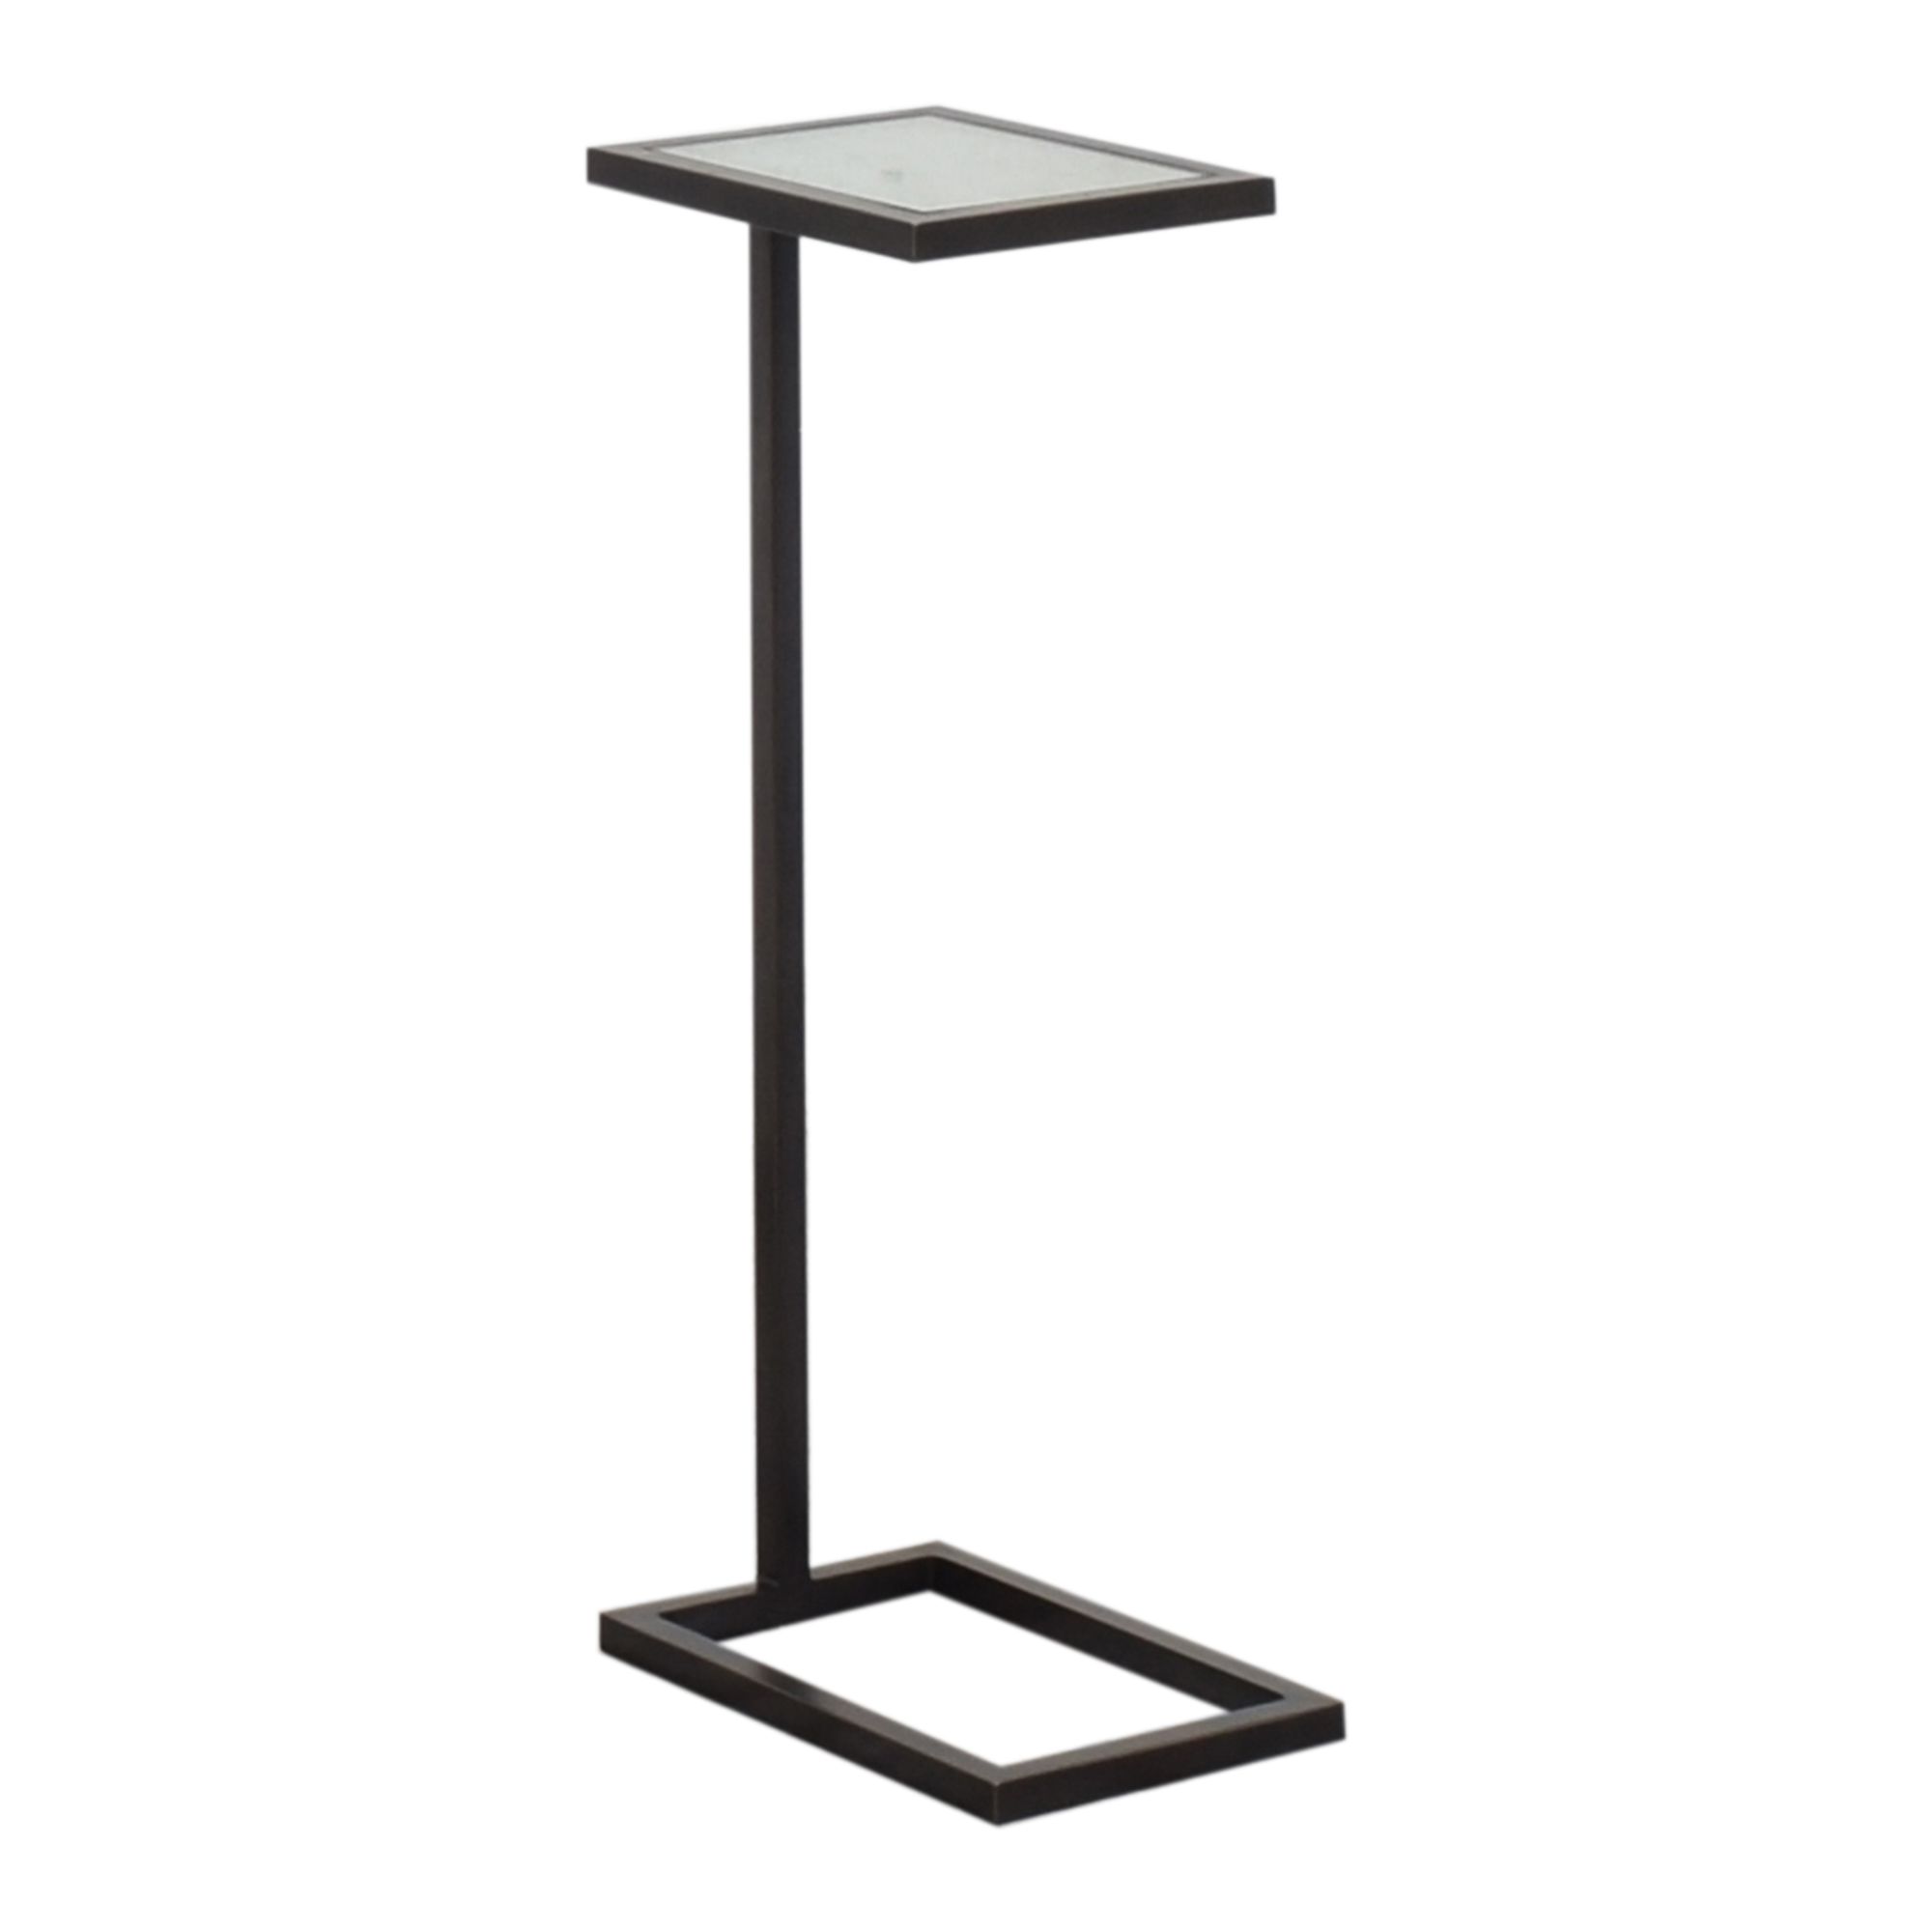 Restoration Hardware Restoration Hardware Crosby Side Table